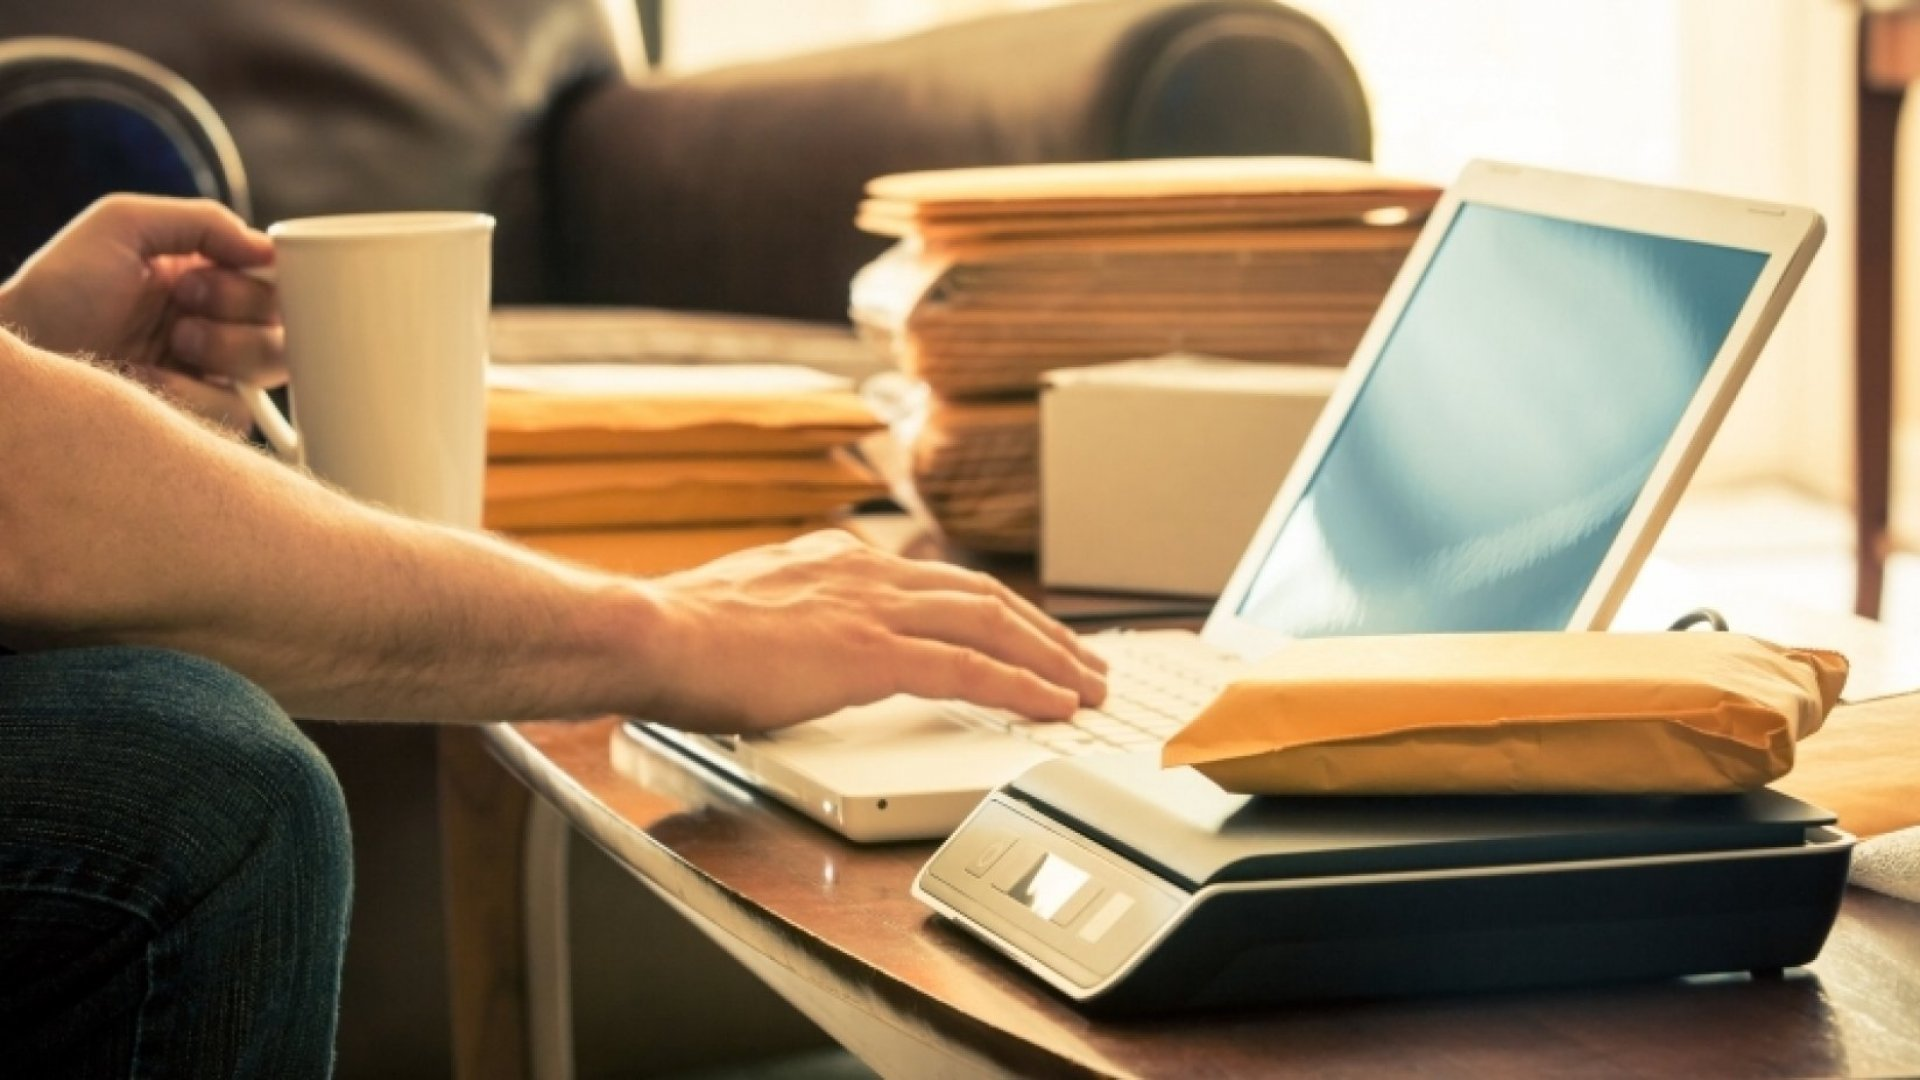 3 Types of Management Tools Home-Based Business Owners Are Using